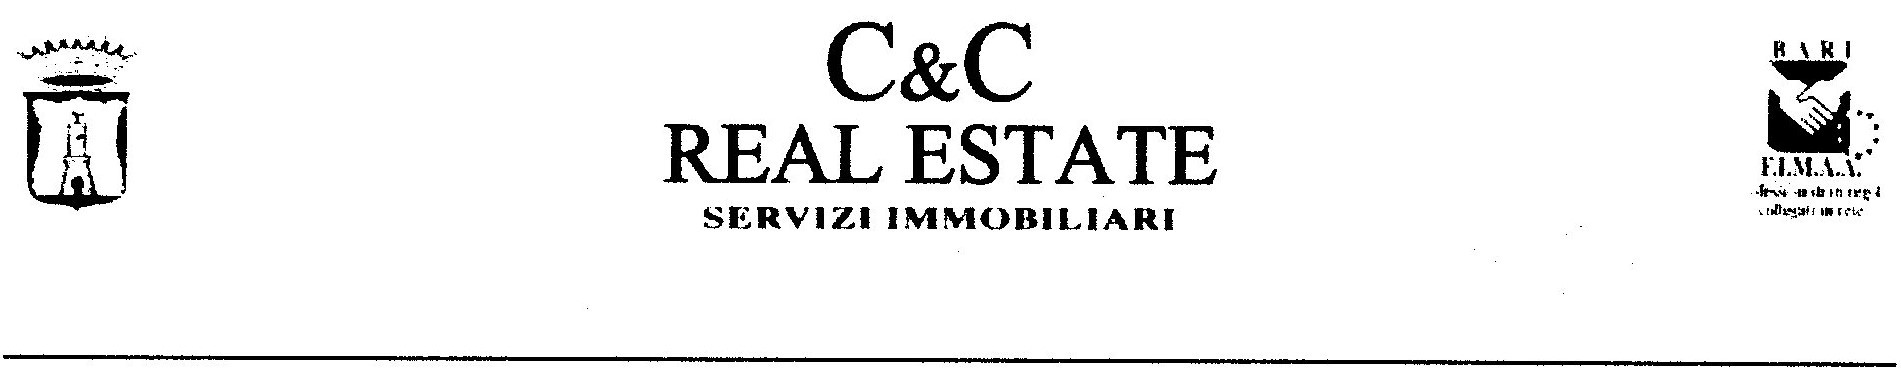 C & C REAL ESTATE SERVIZI IMMOBILIRI